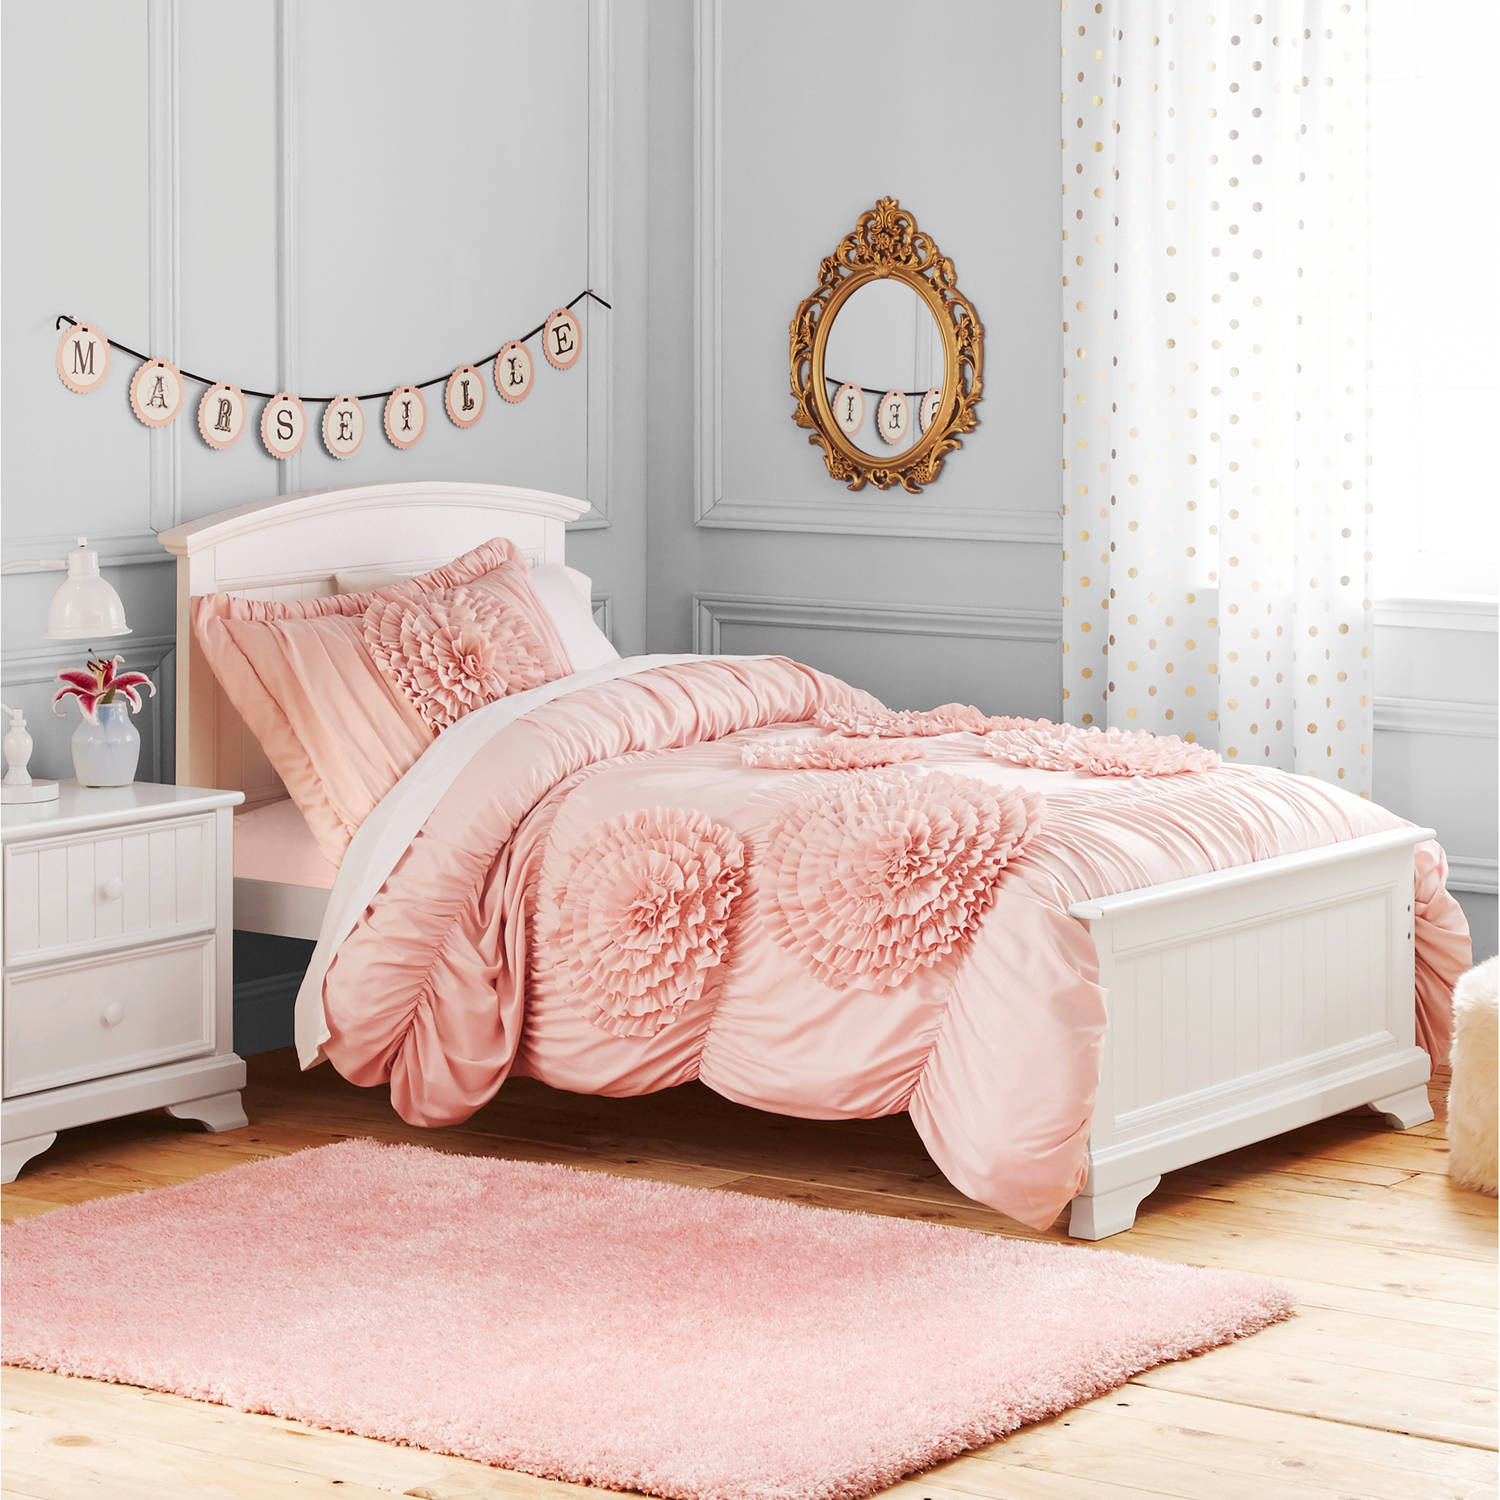 Image of: Bedding Collections for Teen